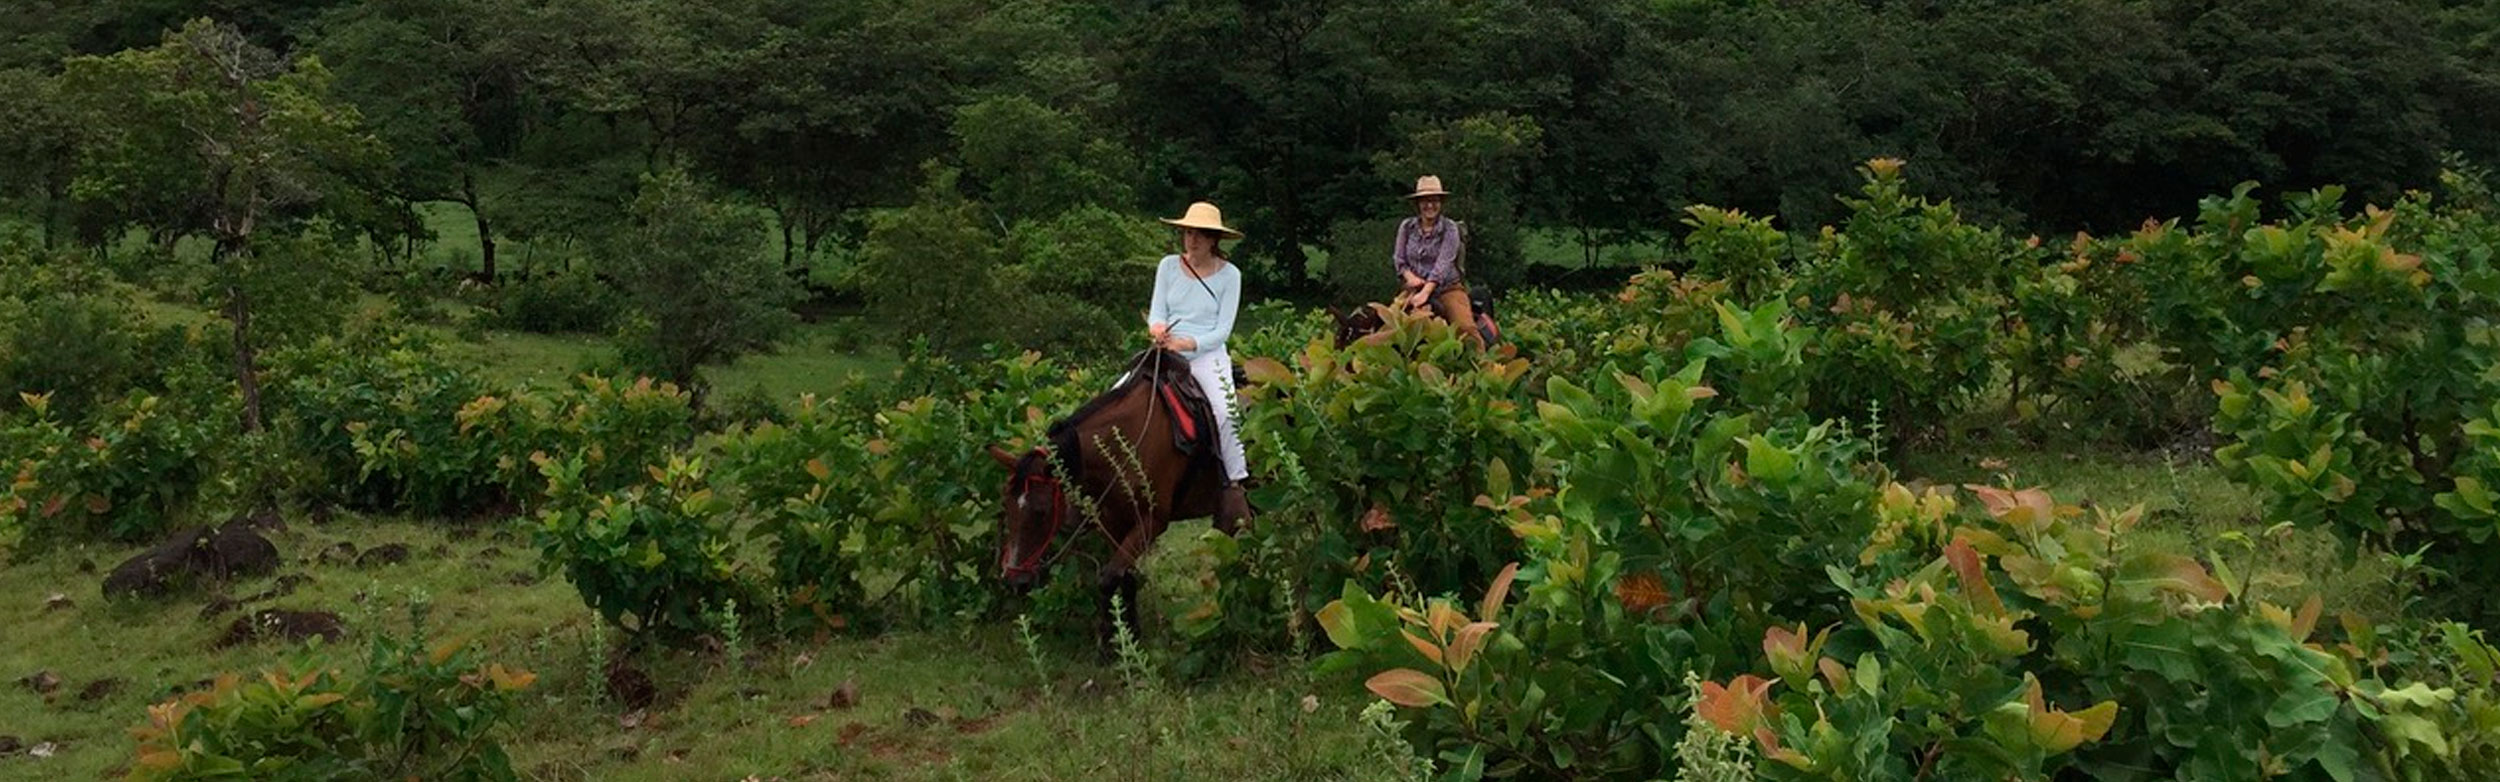 Horseback Riding Experience: Ride and Discover Panamá